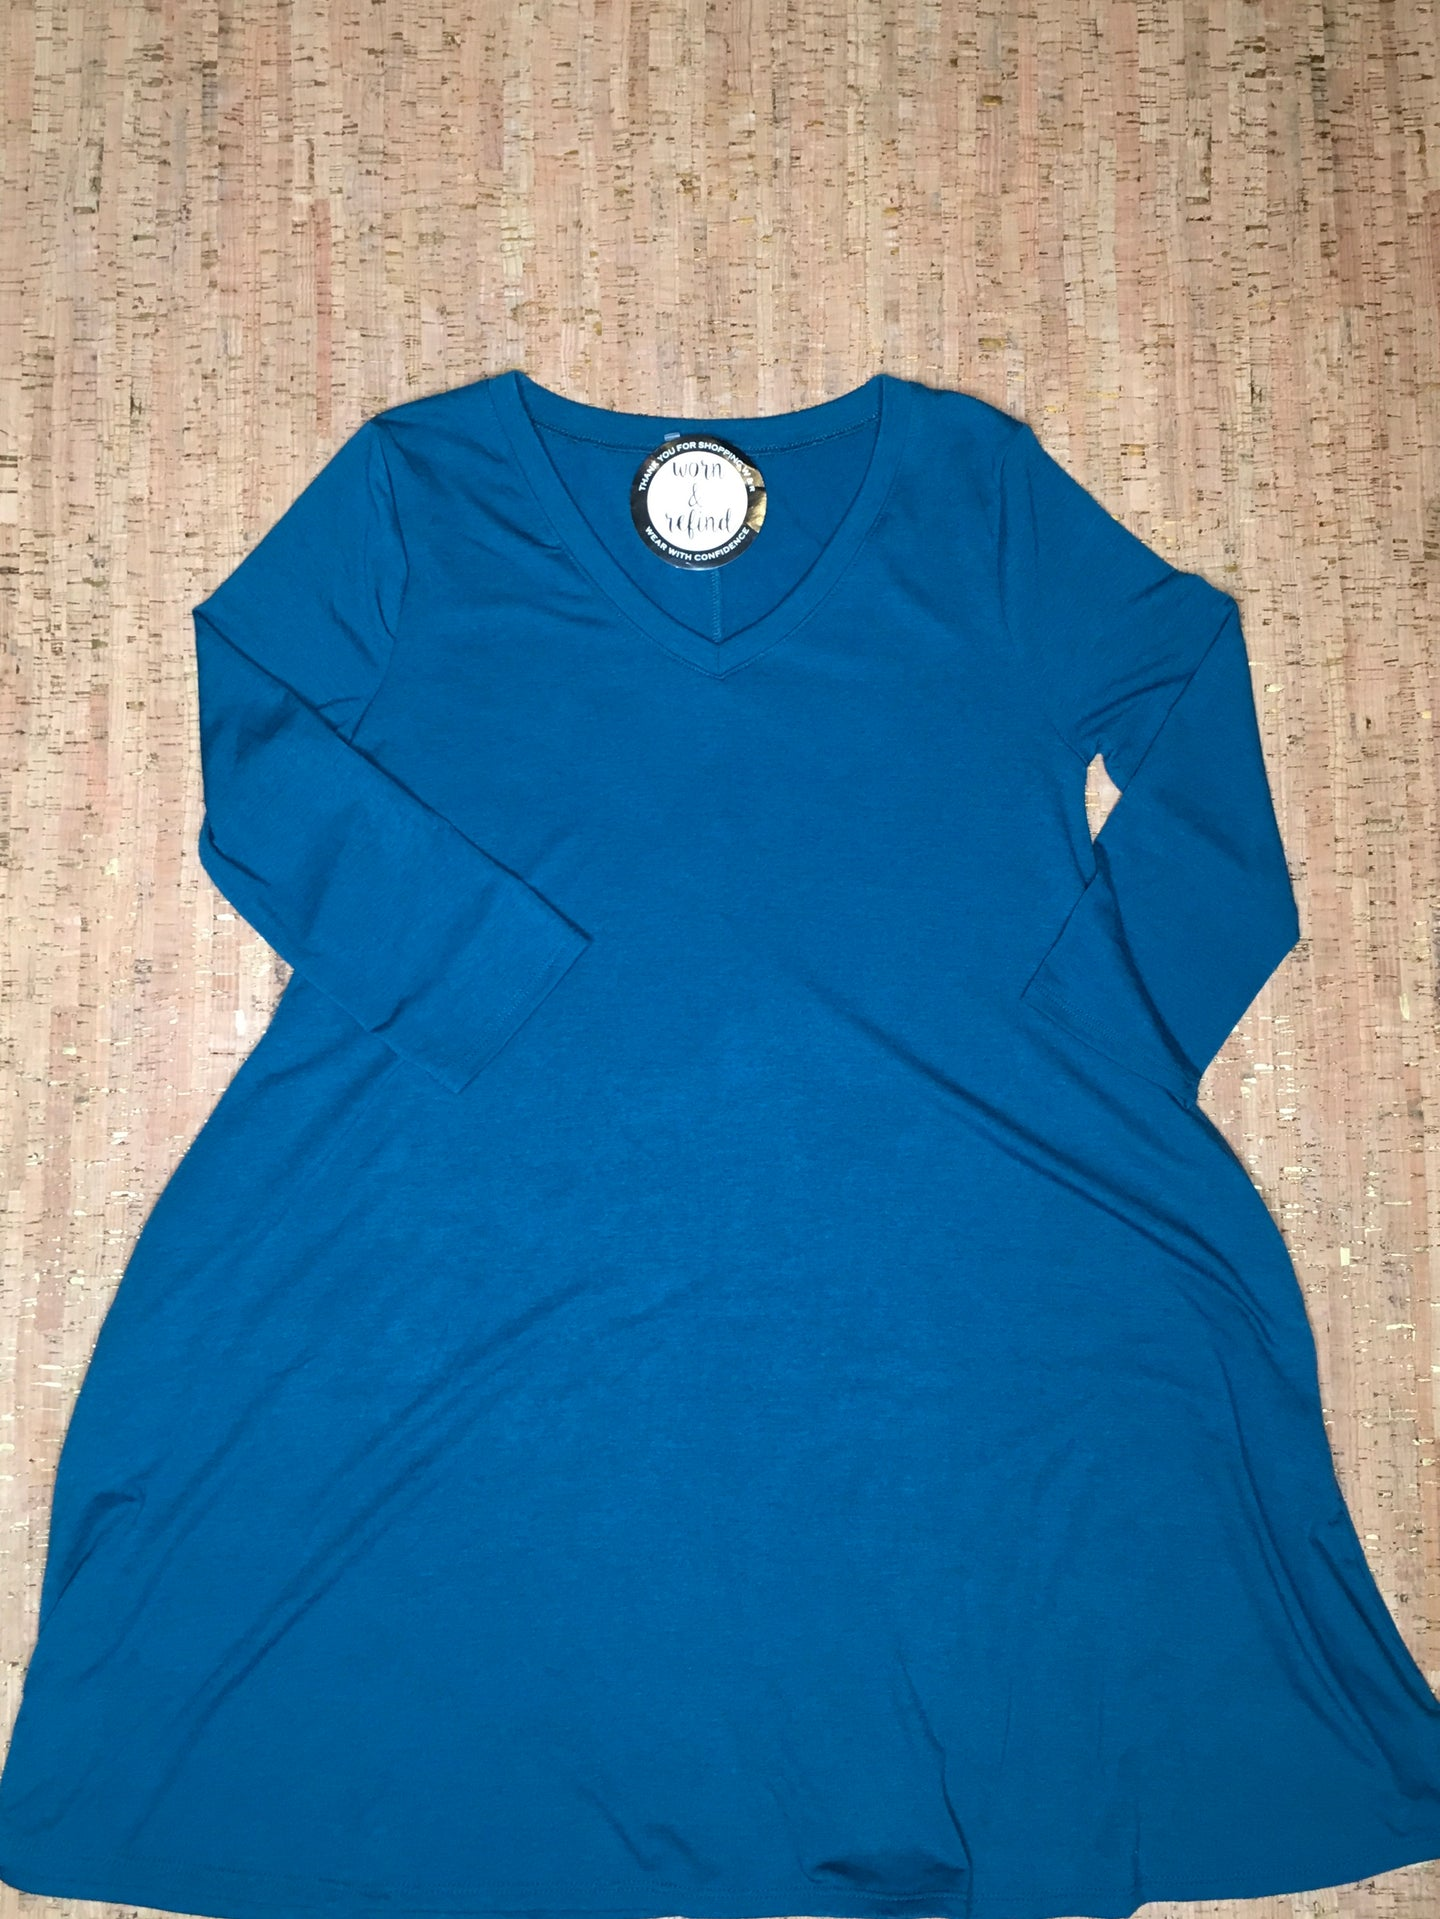 Teal 3/4 Sleeve V-Neck Tunic